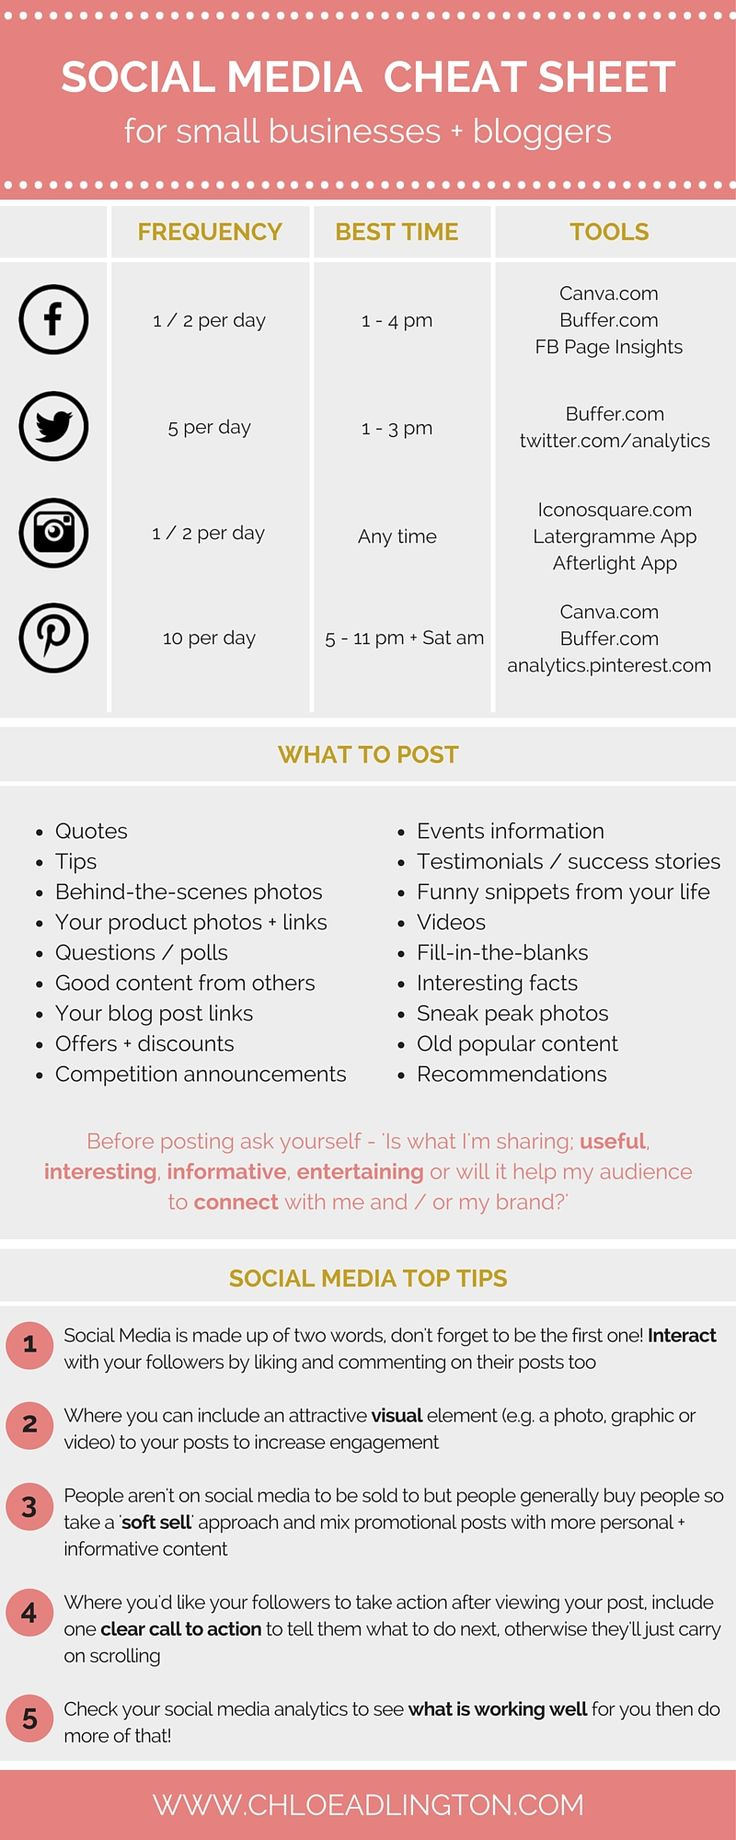 Fantastic 10 Tips For Writing A Good Resume Big 100 Free Resume Builder Online Clean 16 Birthday Invitation Templates 1st Birthday Invitation Template Youthful 1st Birthday Invite Templates Red2.5 Button Template 25  Best Ideas About Template For Business Plan On Pinterest ..